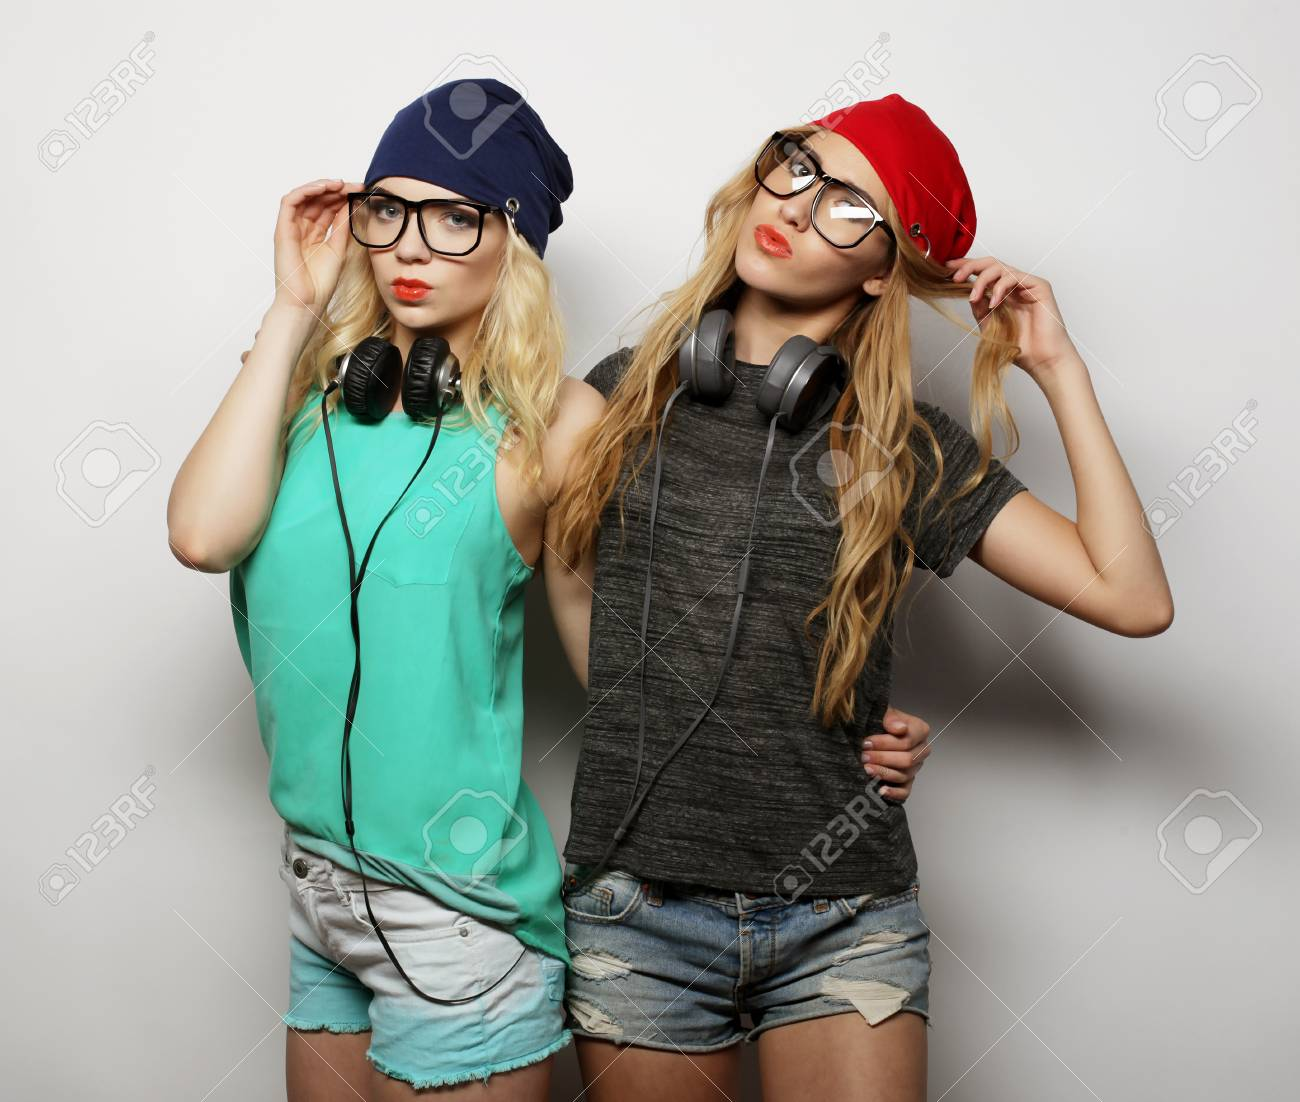 fe37d0272b2 Stock Photo - Studio lifestyle portrait of two best friends hipster girls  wearing stylish bright outfits